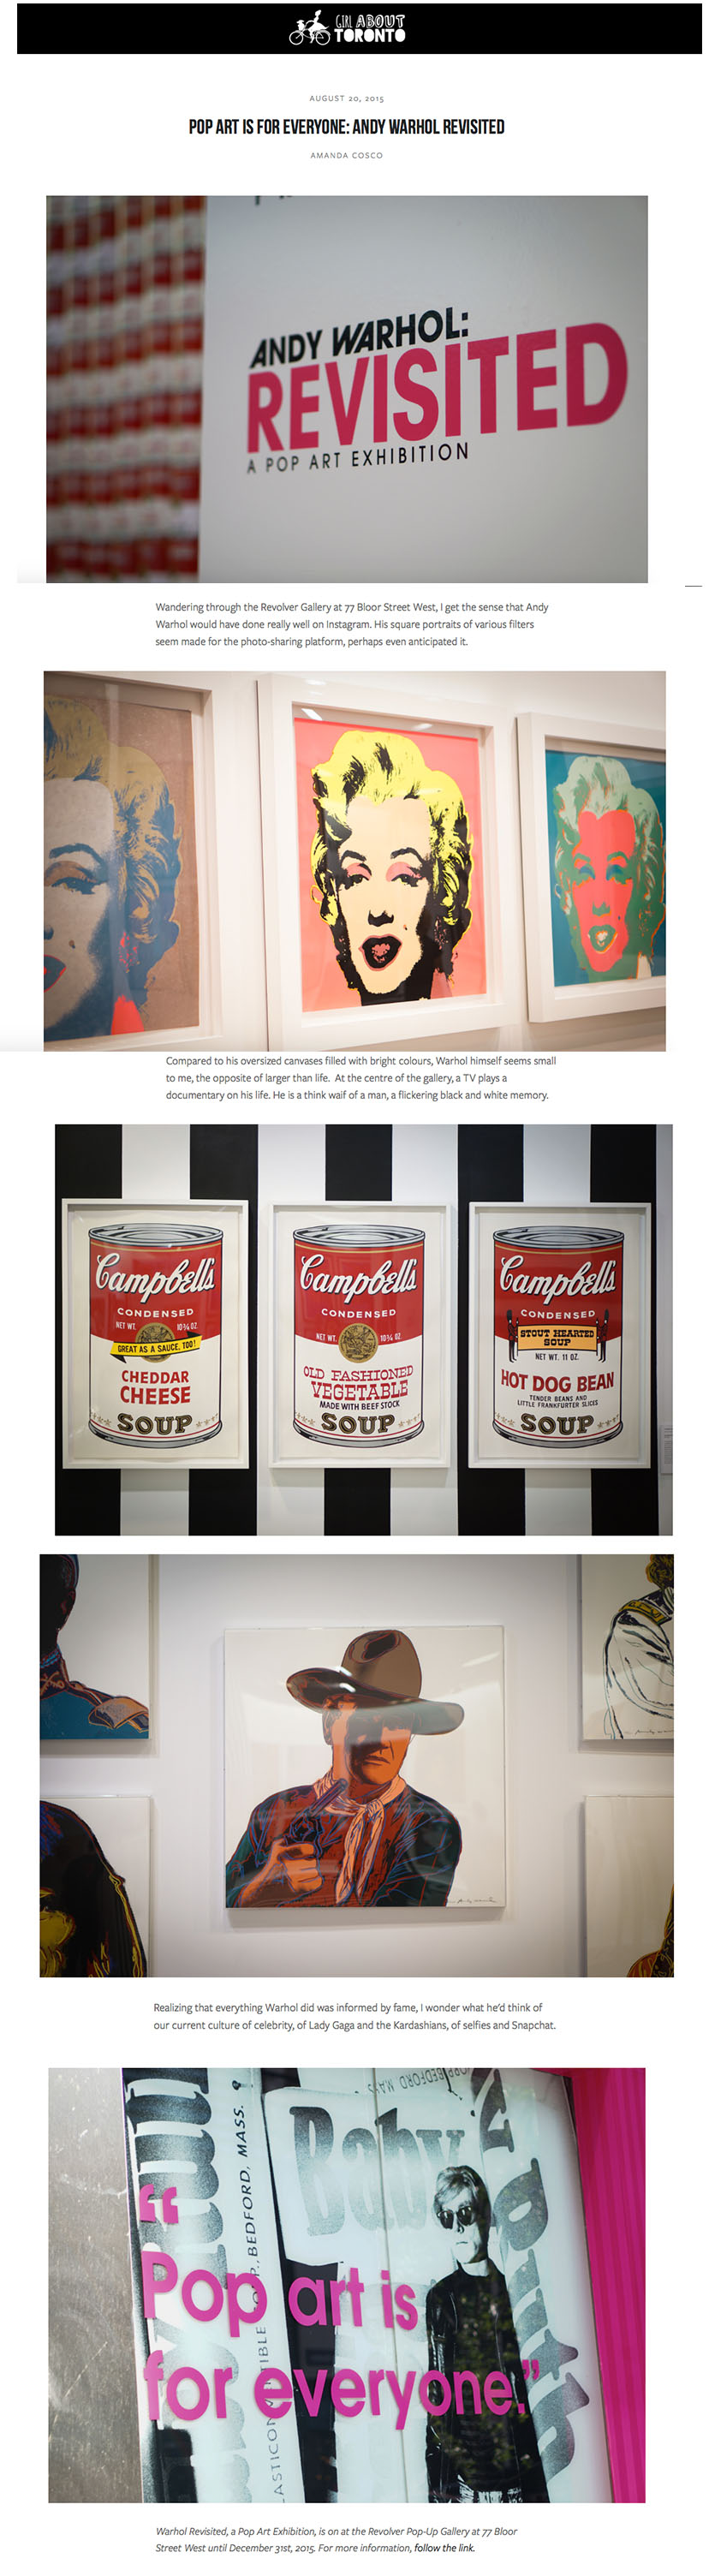 GIRL ABOUT TORONTO WARHOL REVISITED